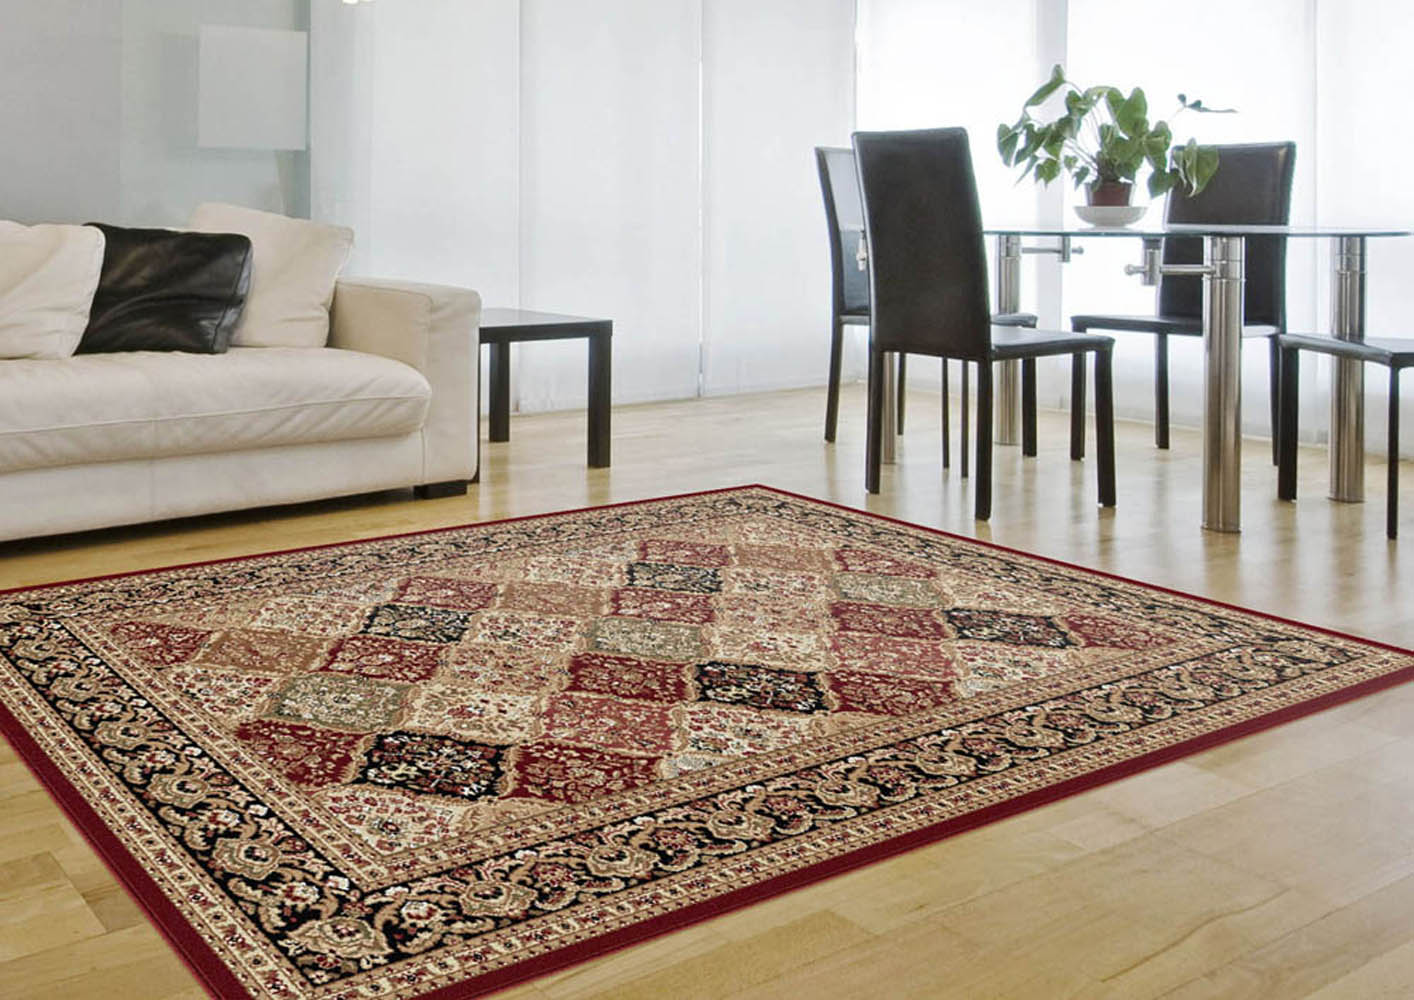 Potenza Brunelda Area Rugs 4770 Traditional Oriental Red Panel